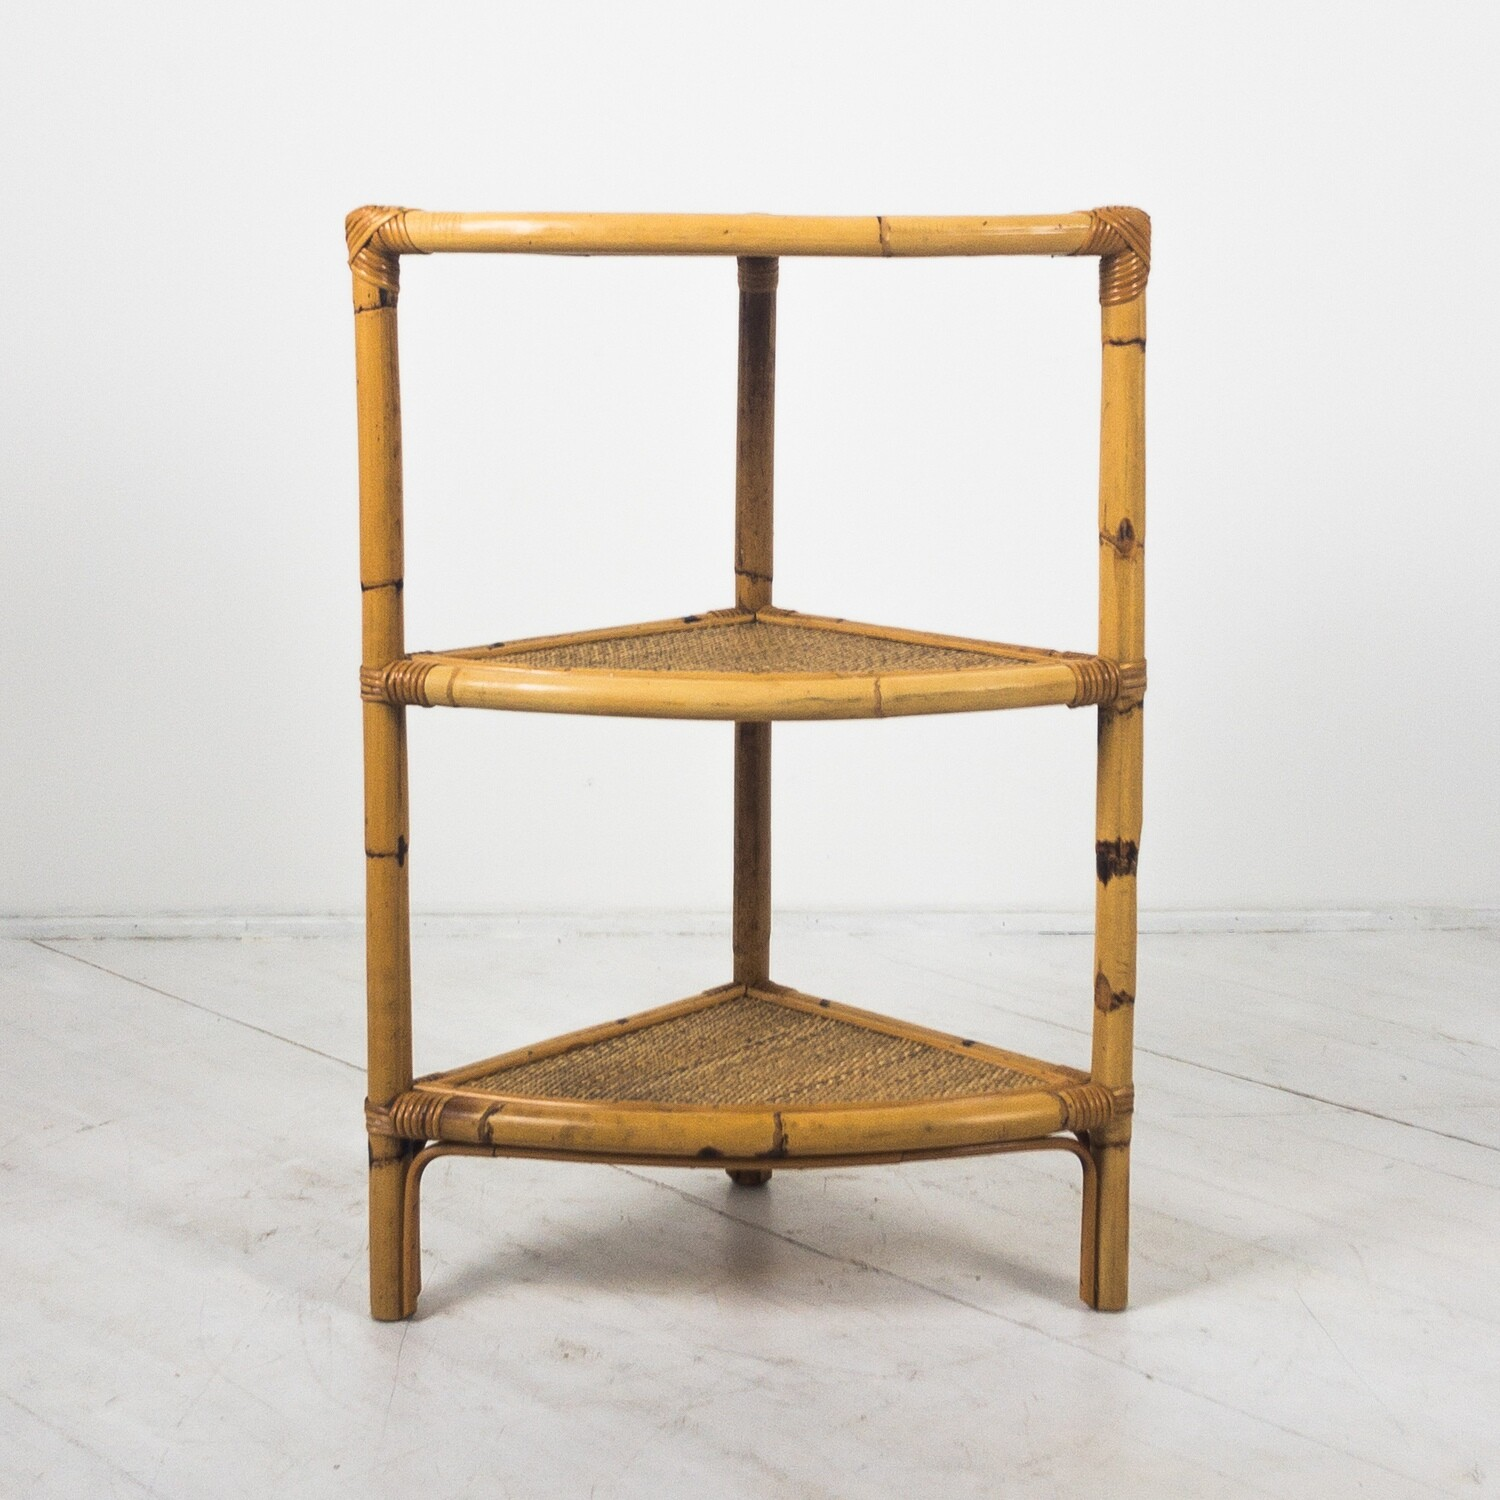 Corner coffee table in bamboo and wicker, Italy 1970s